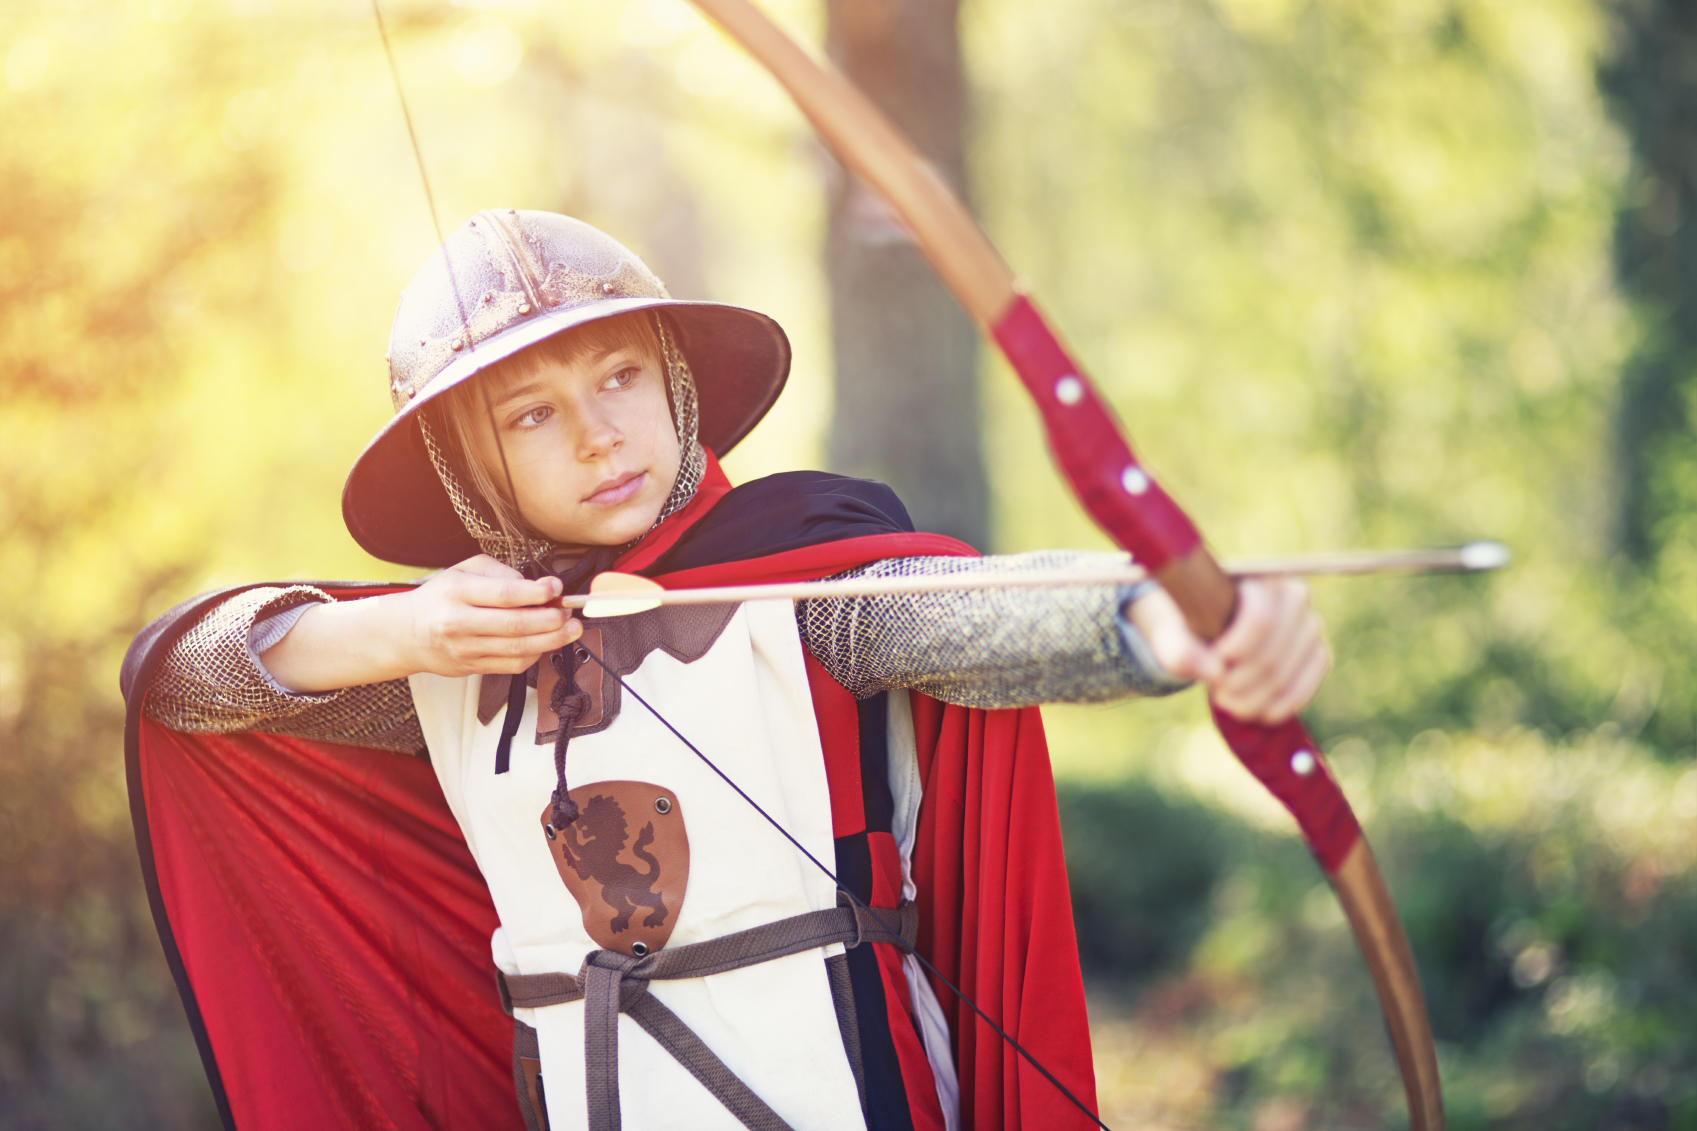 picture of an archer girl